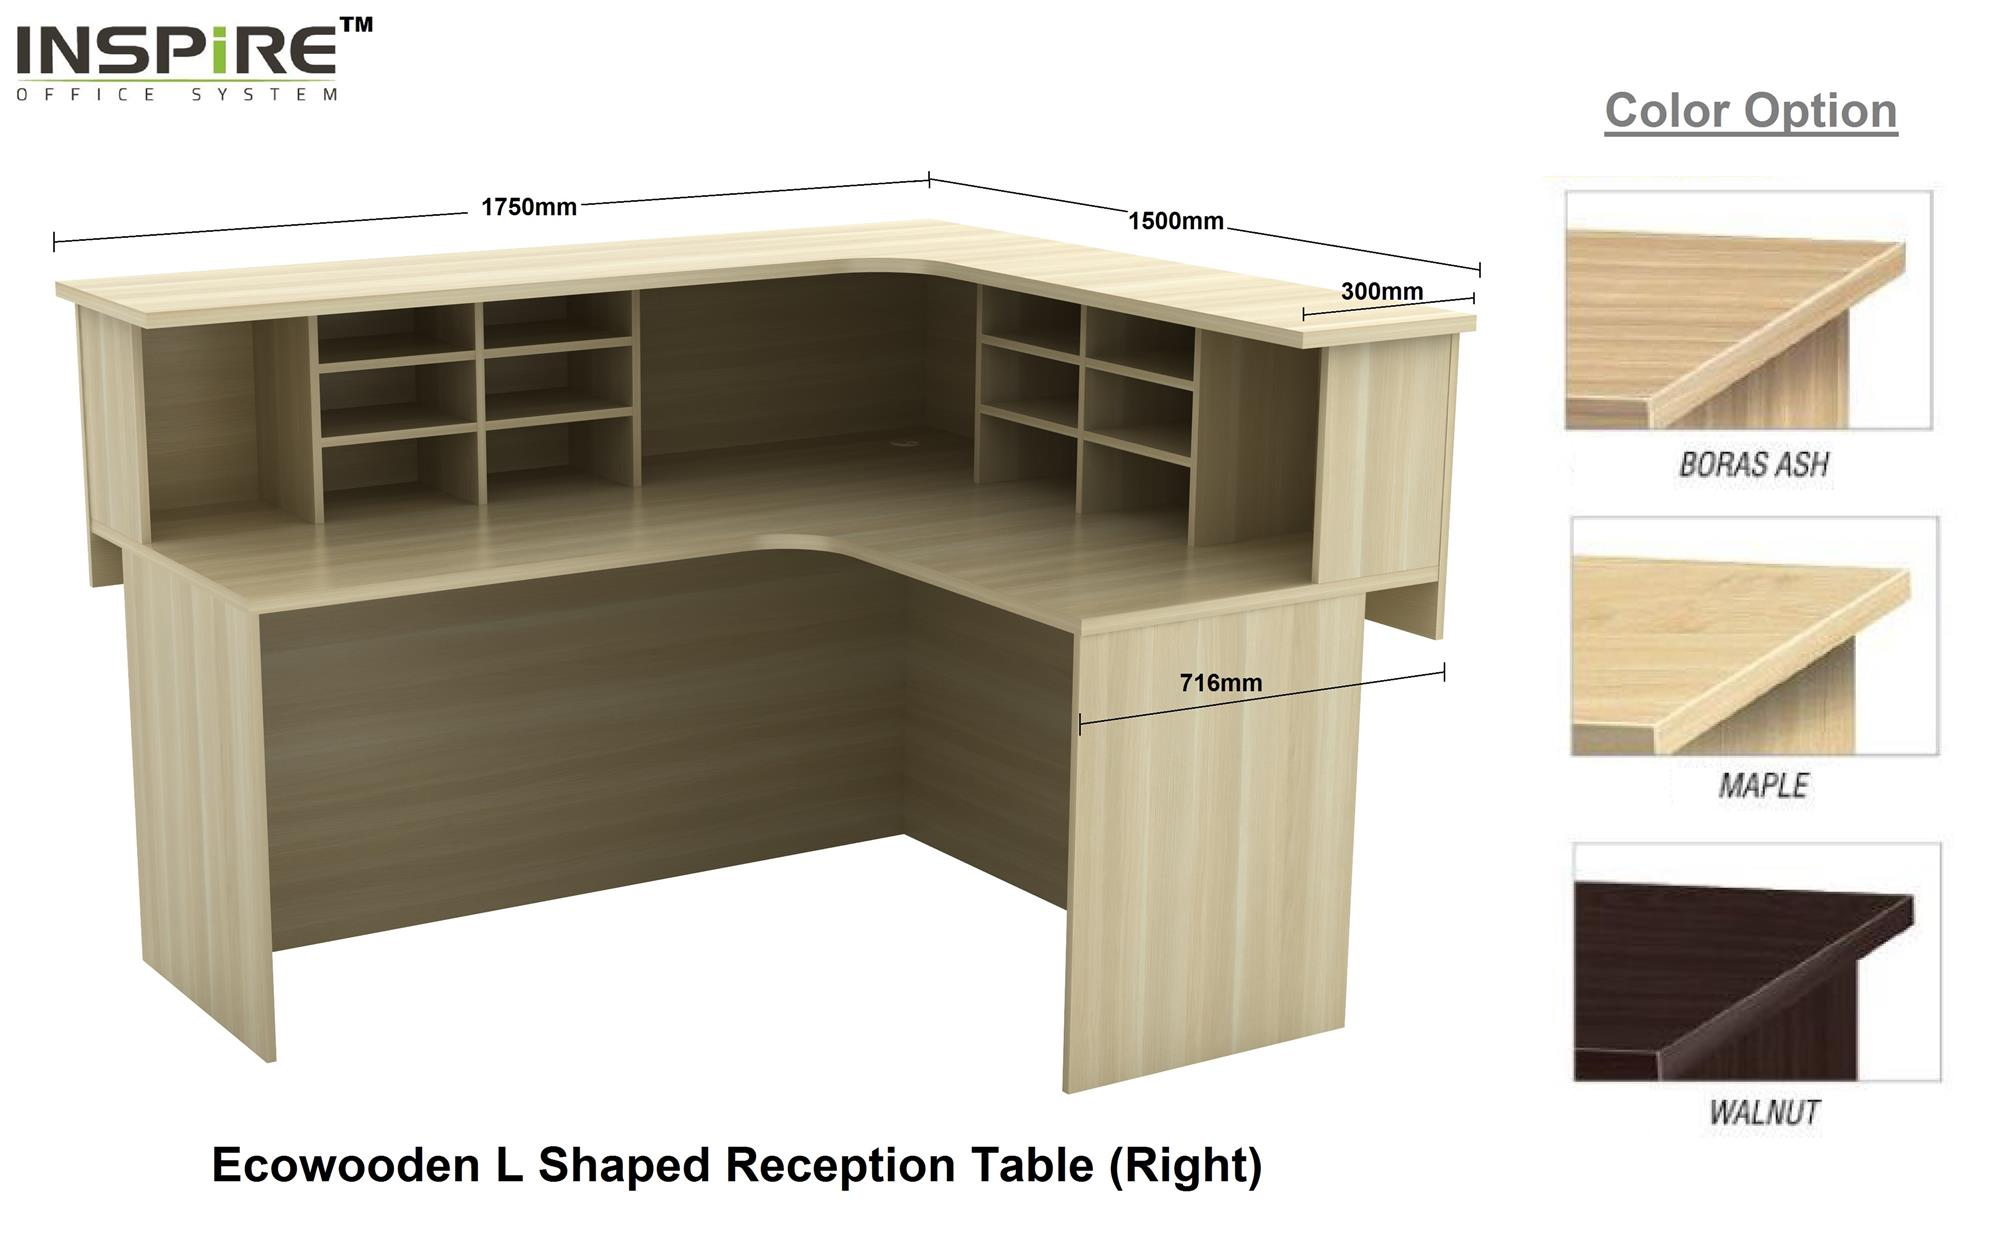 Ecowooden L Shaped Reception Counter